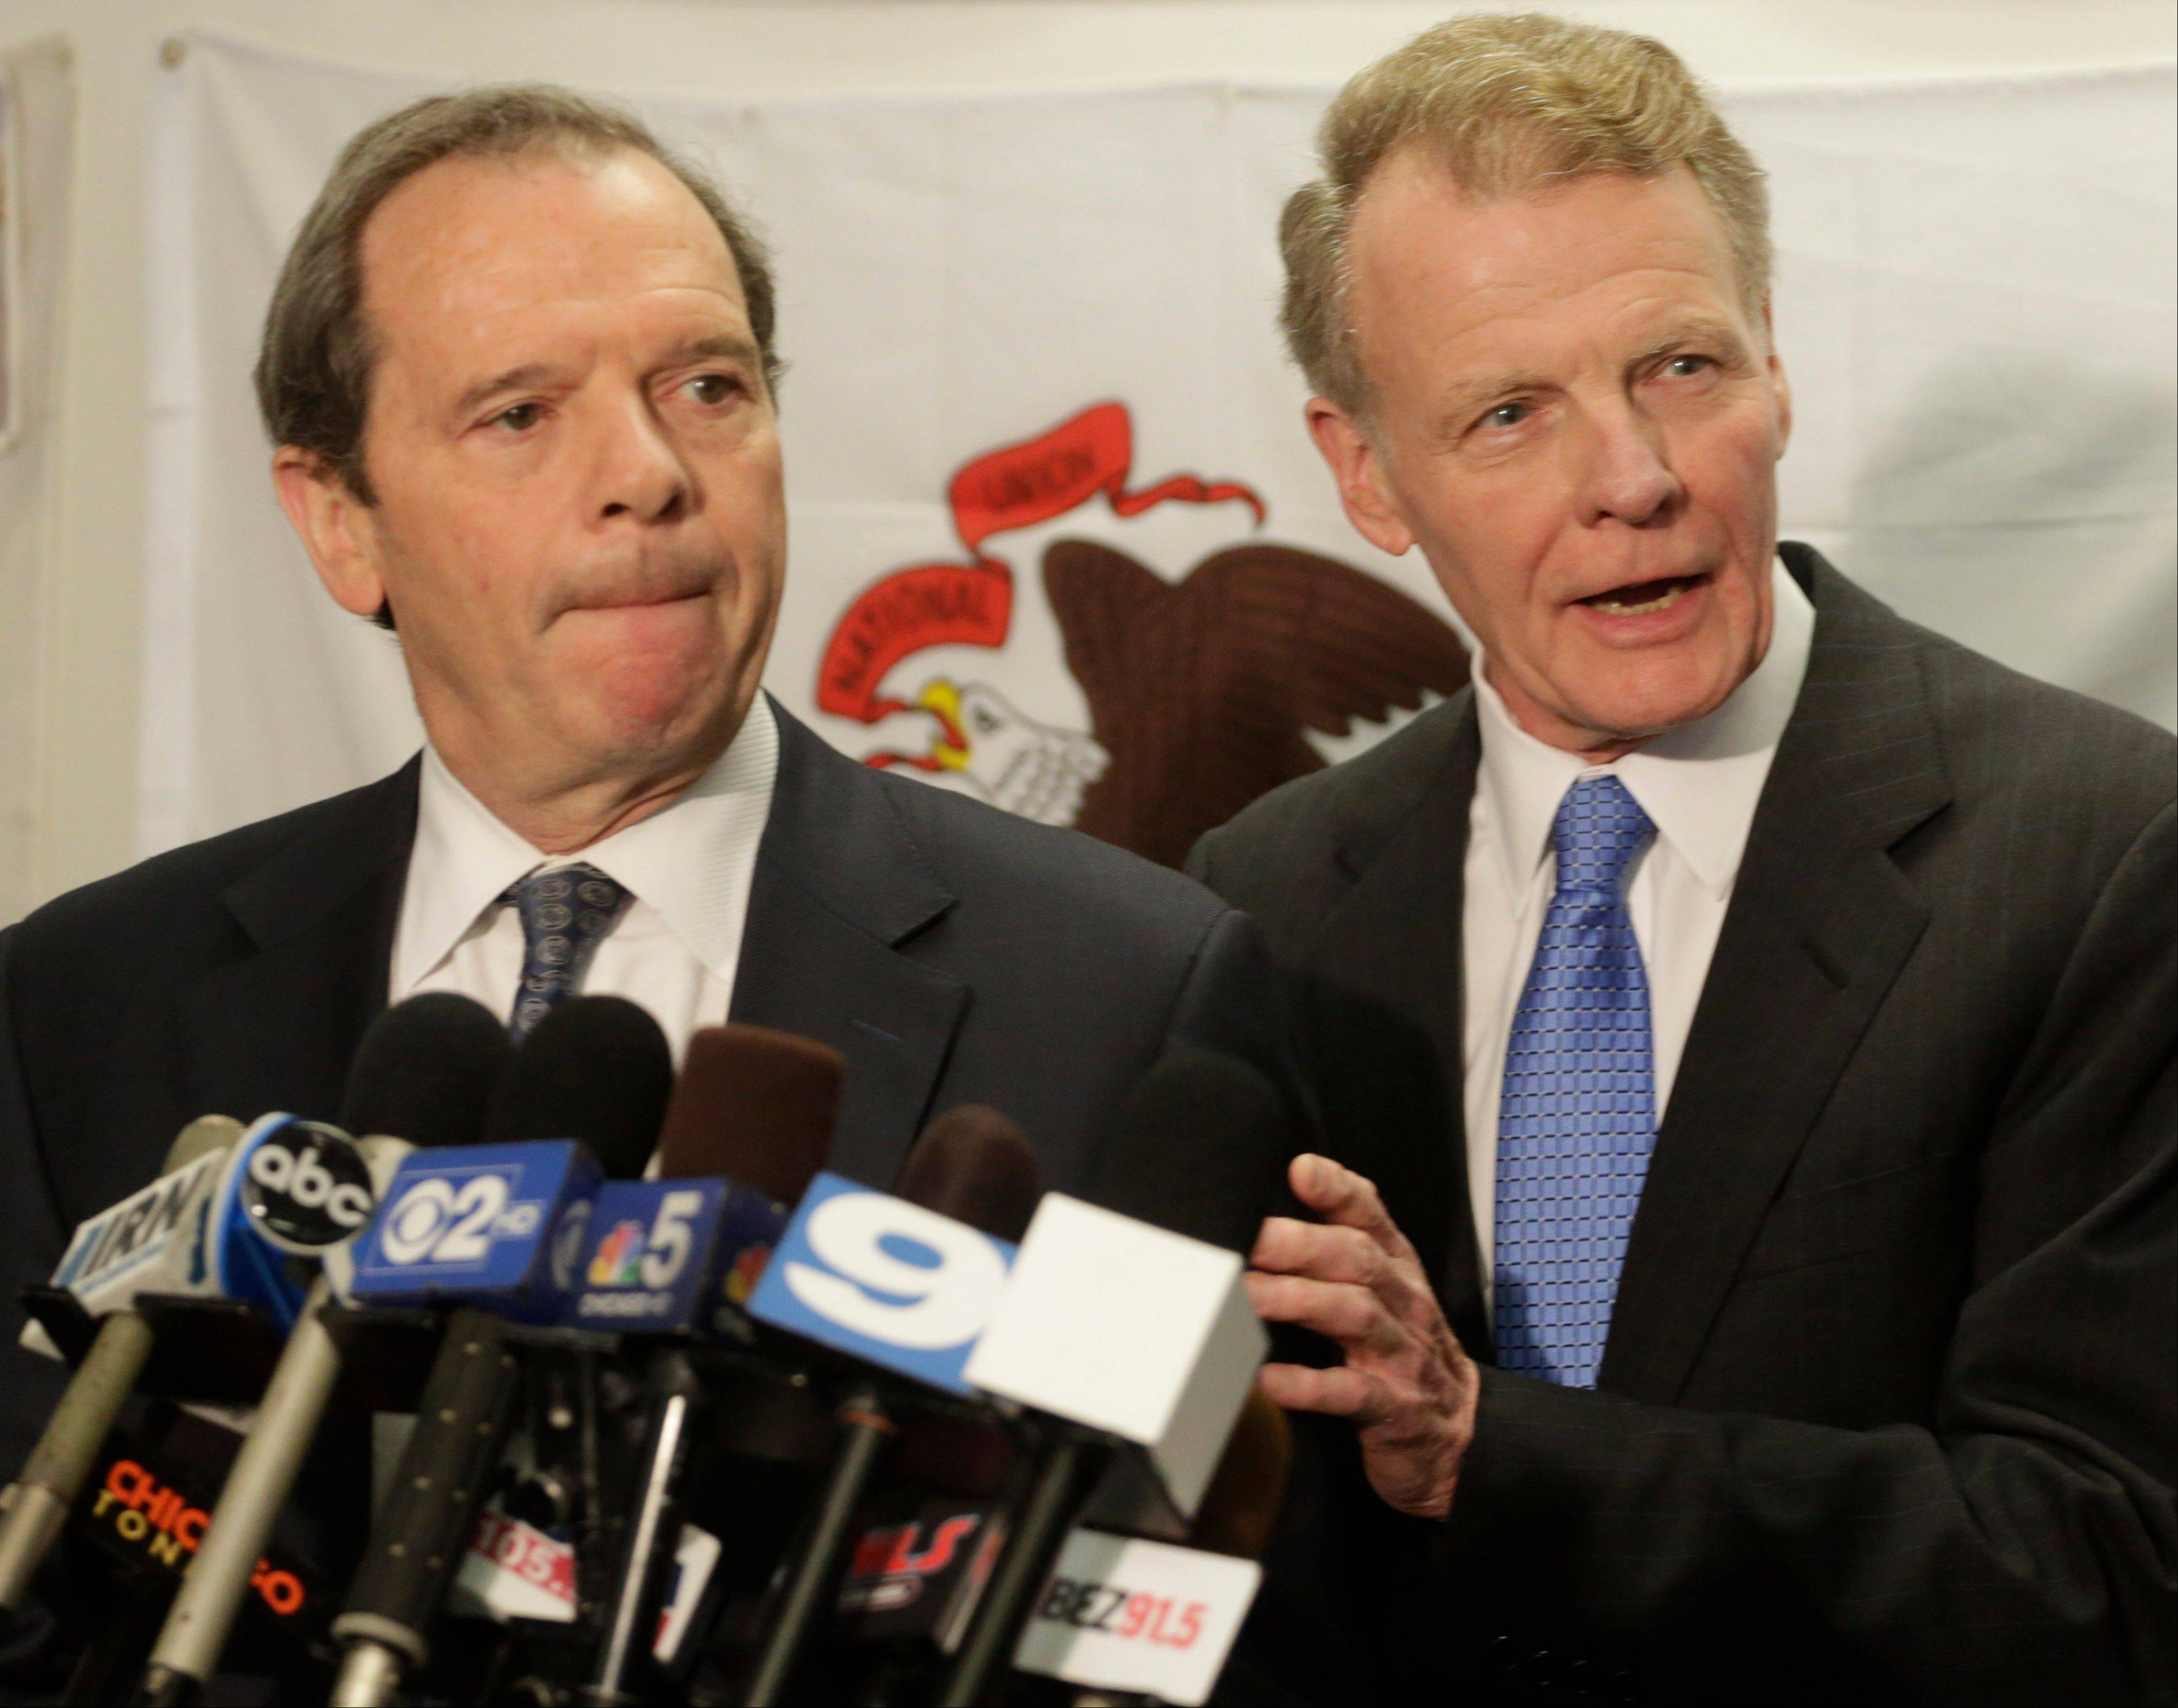 State Senate President John Cullerton, left, and House Speaker Michael Madigan talk with reporters after a meeting with Gov. Pat Quinn on June 10 to discuss the state's pension crisis.